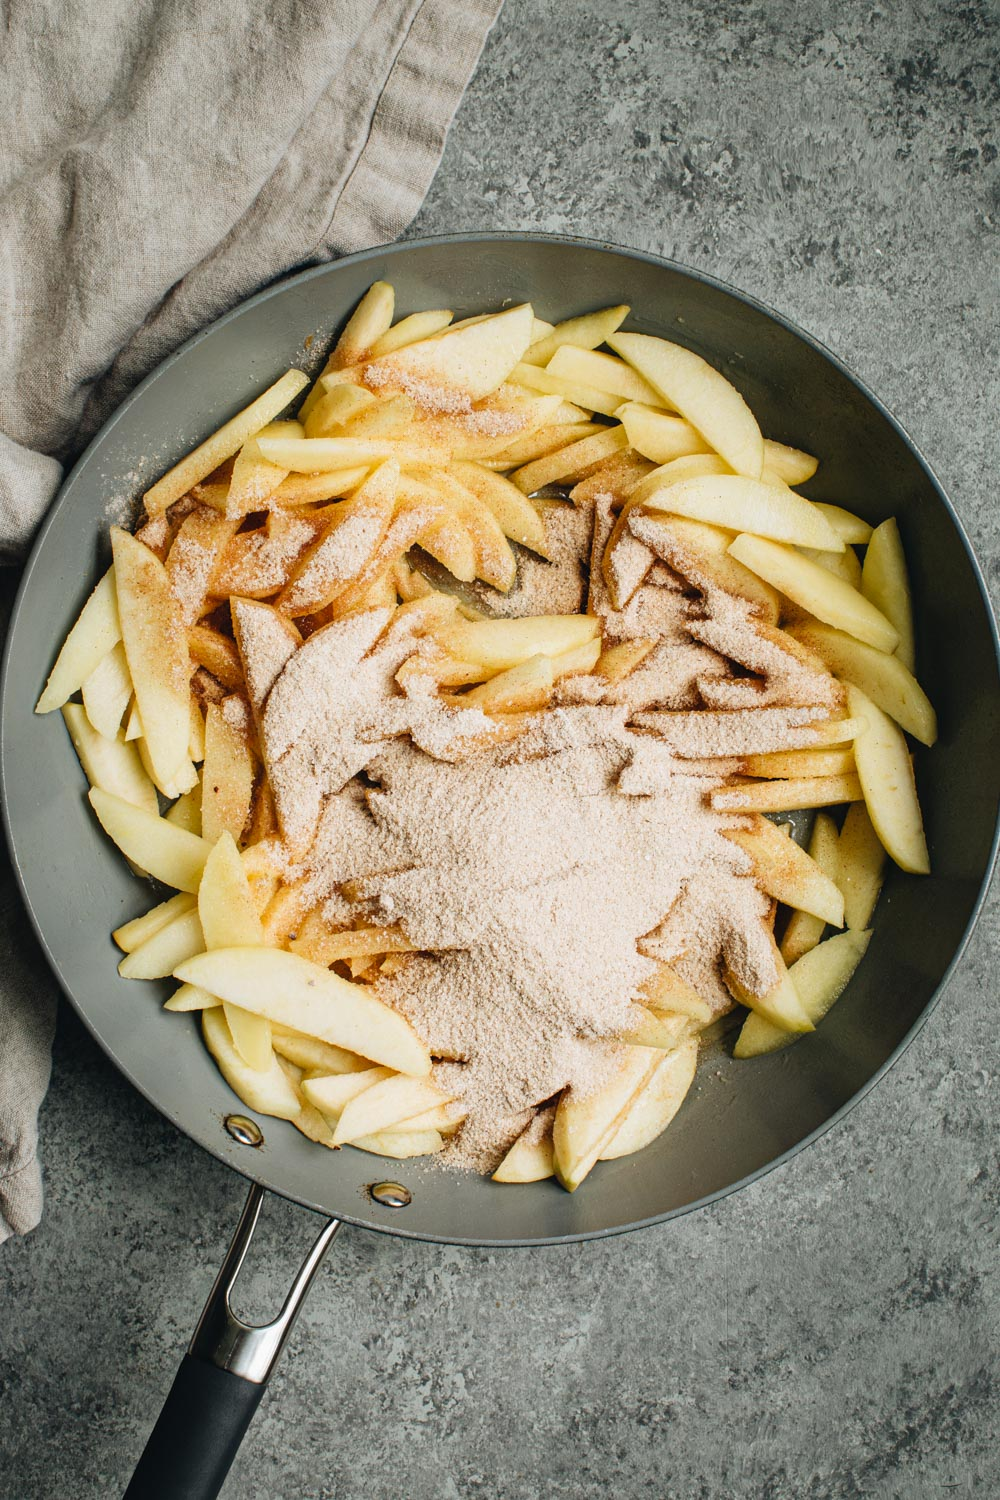 Apple mixture in a skillet.